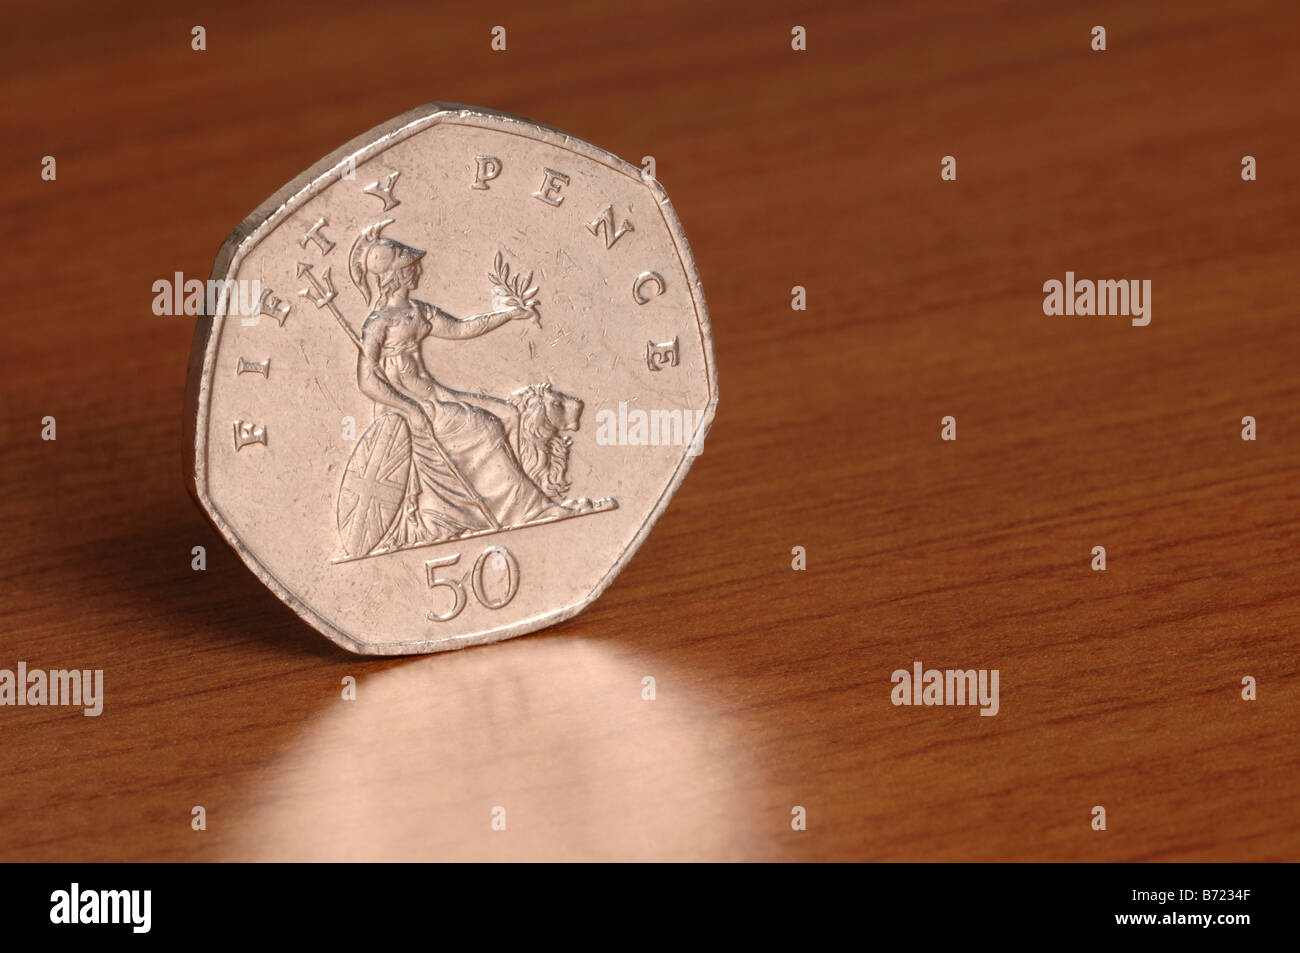 50 pence coin - Stock Image